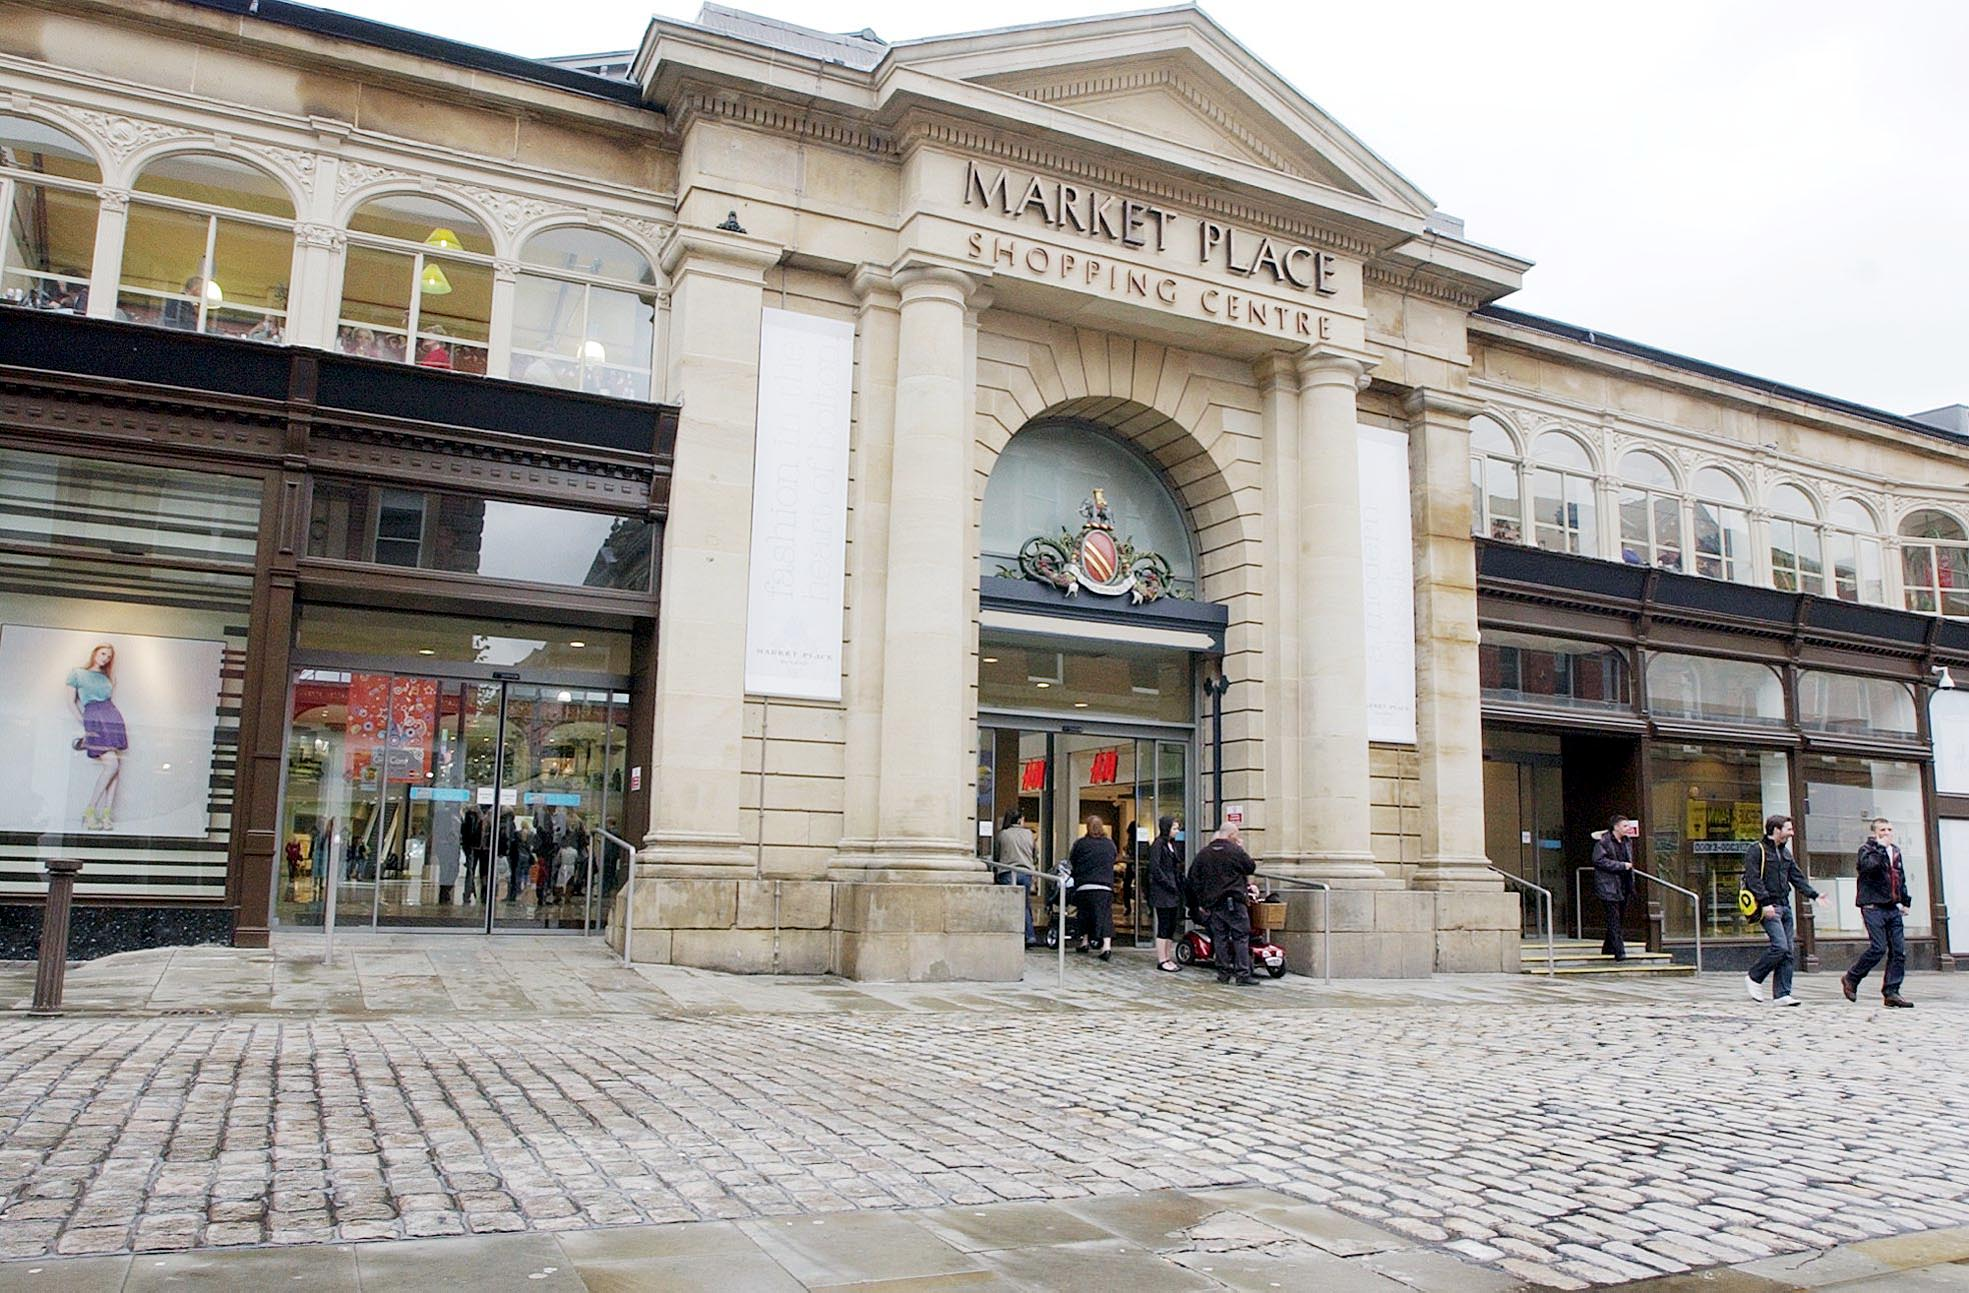 The Market Place shopping centre